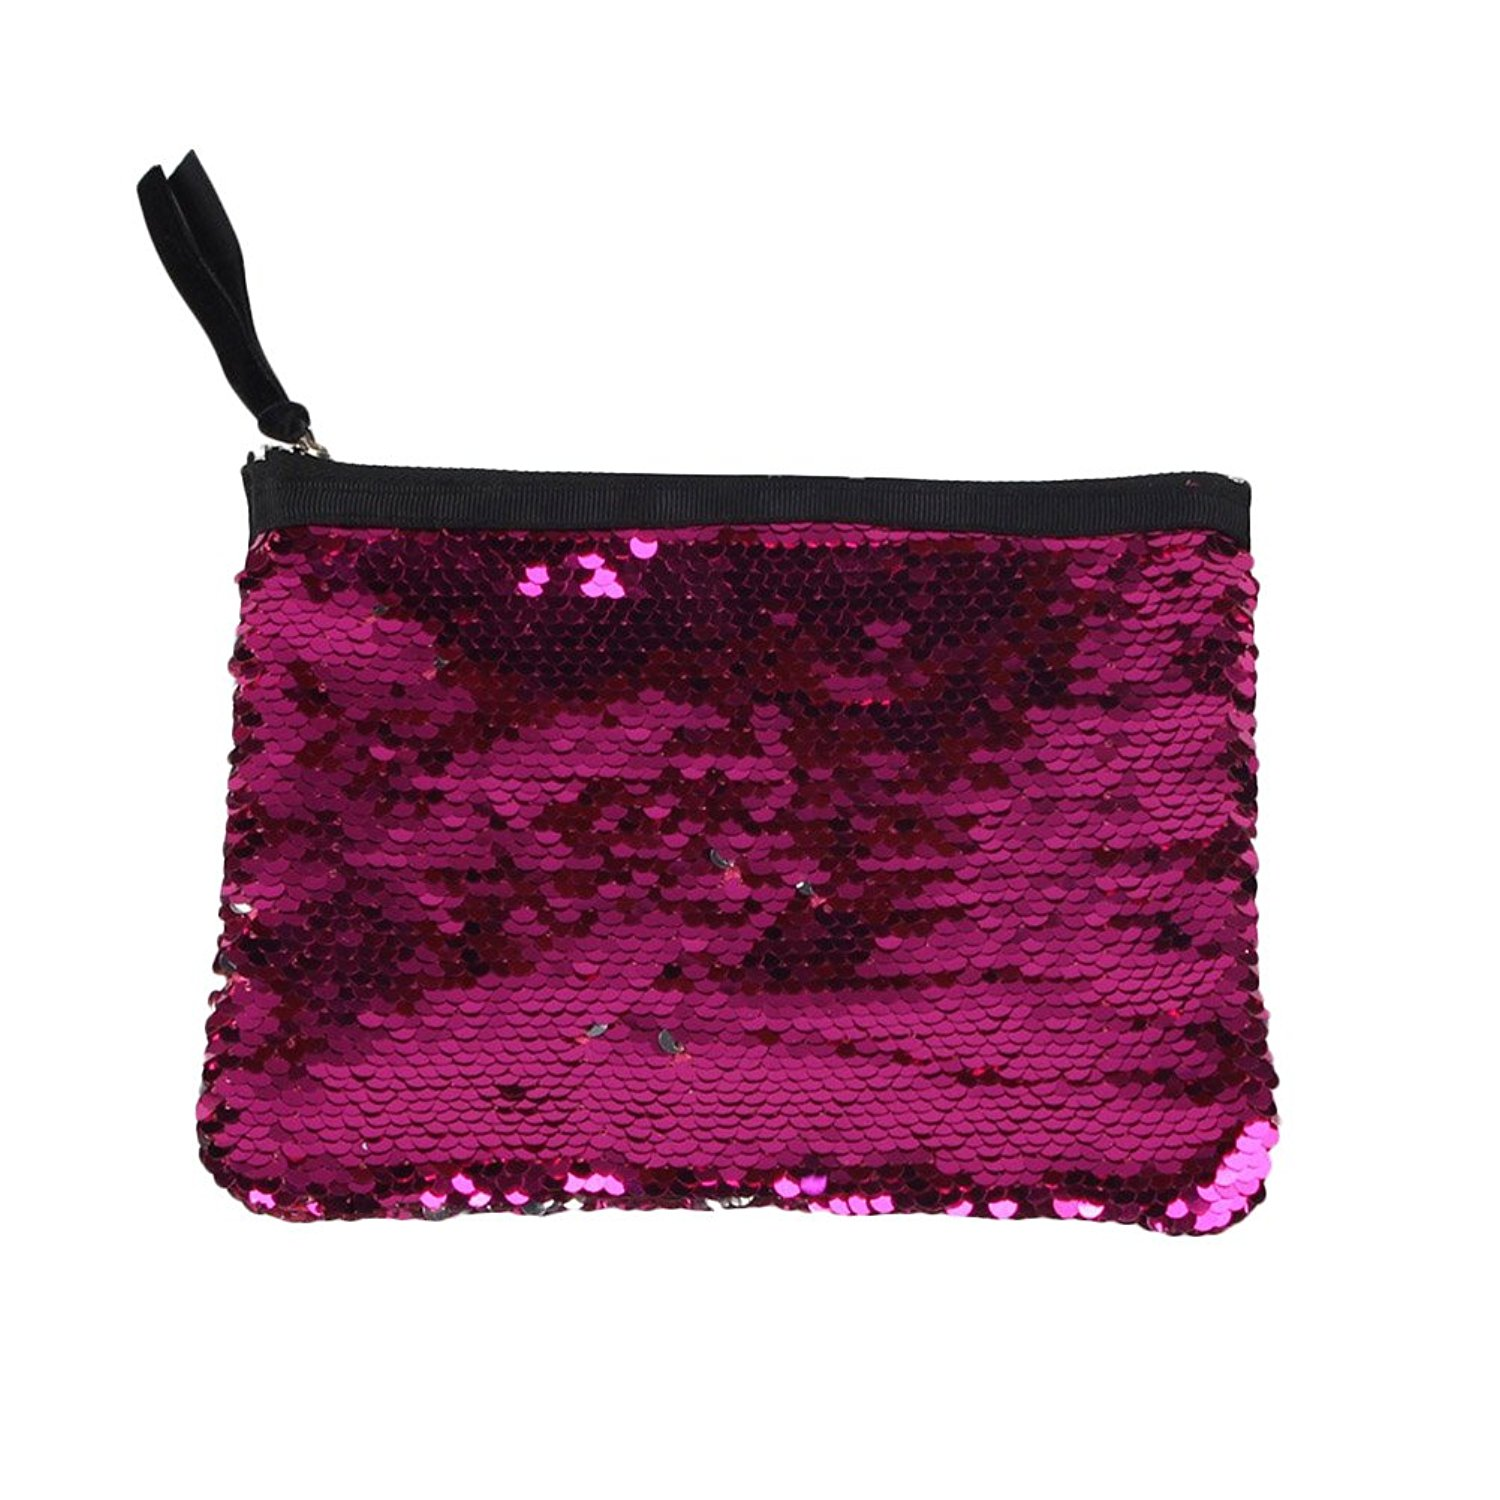 Tinksky Fashion Sparkly Sequin Clutch Bag Handbag Lady Party Evening Clutch Bag Purse Wallet Valentine's Day gift for Women (Rose Red)